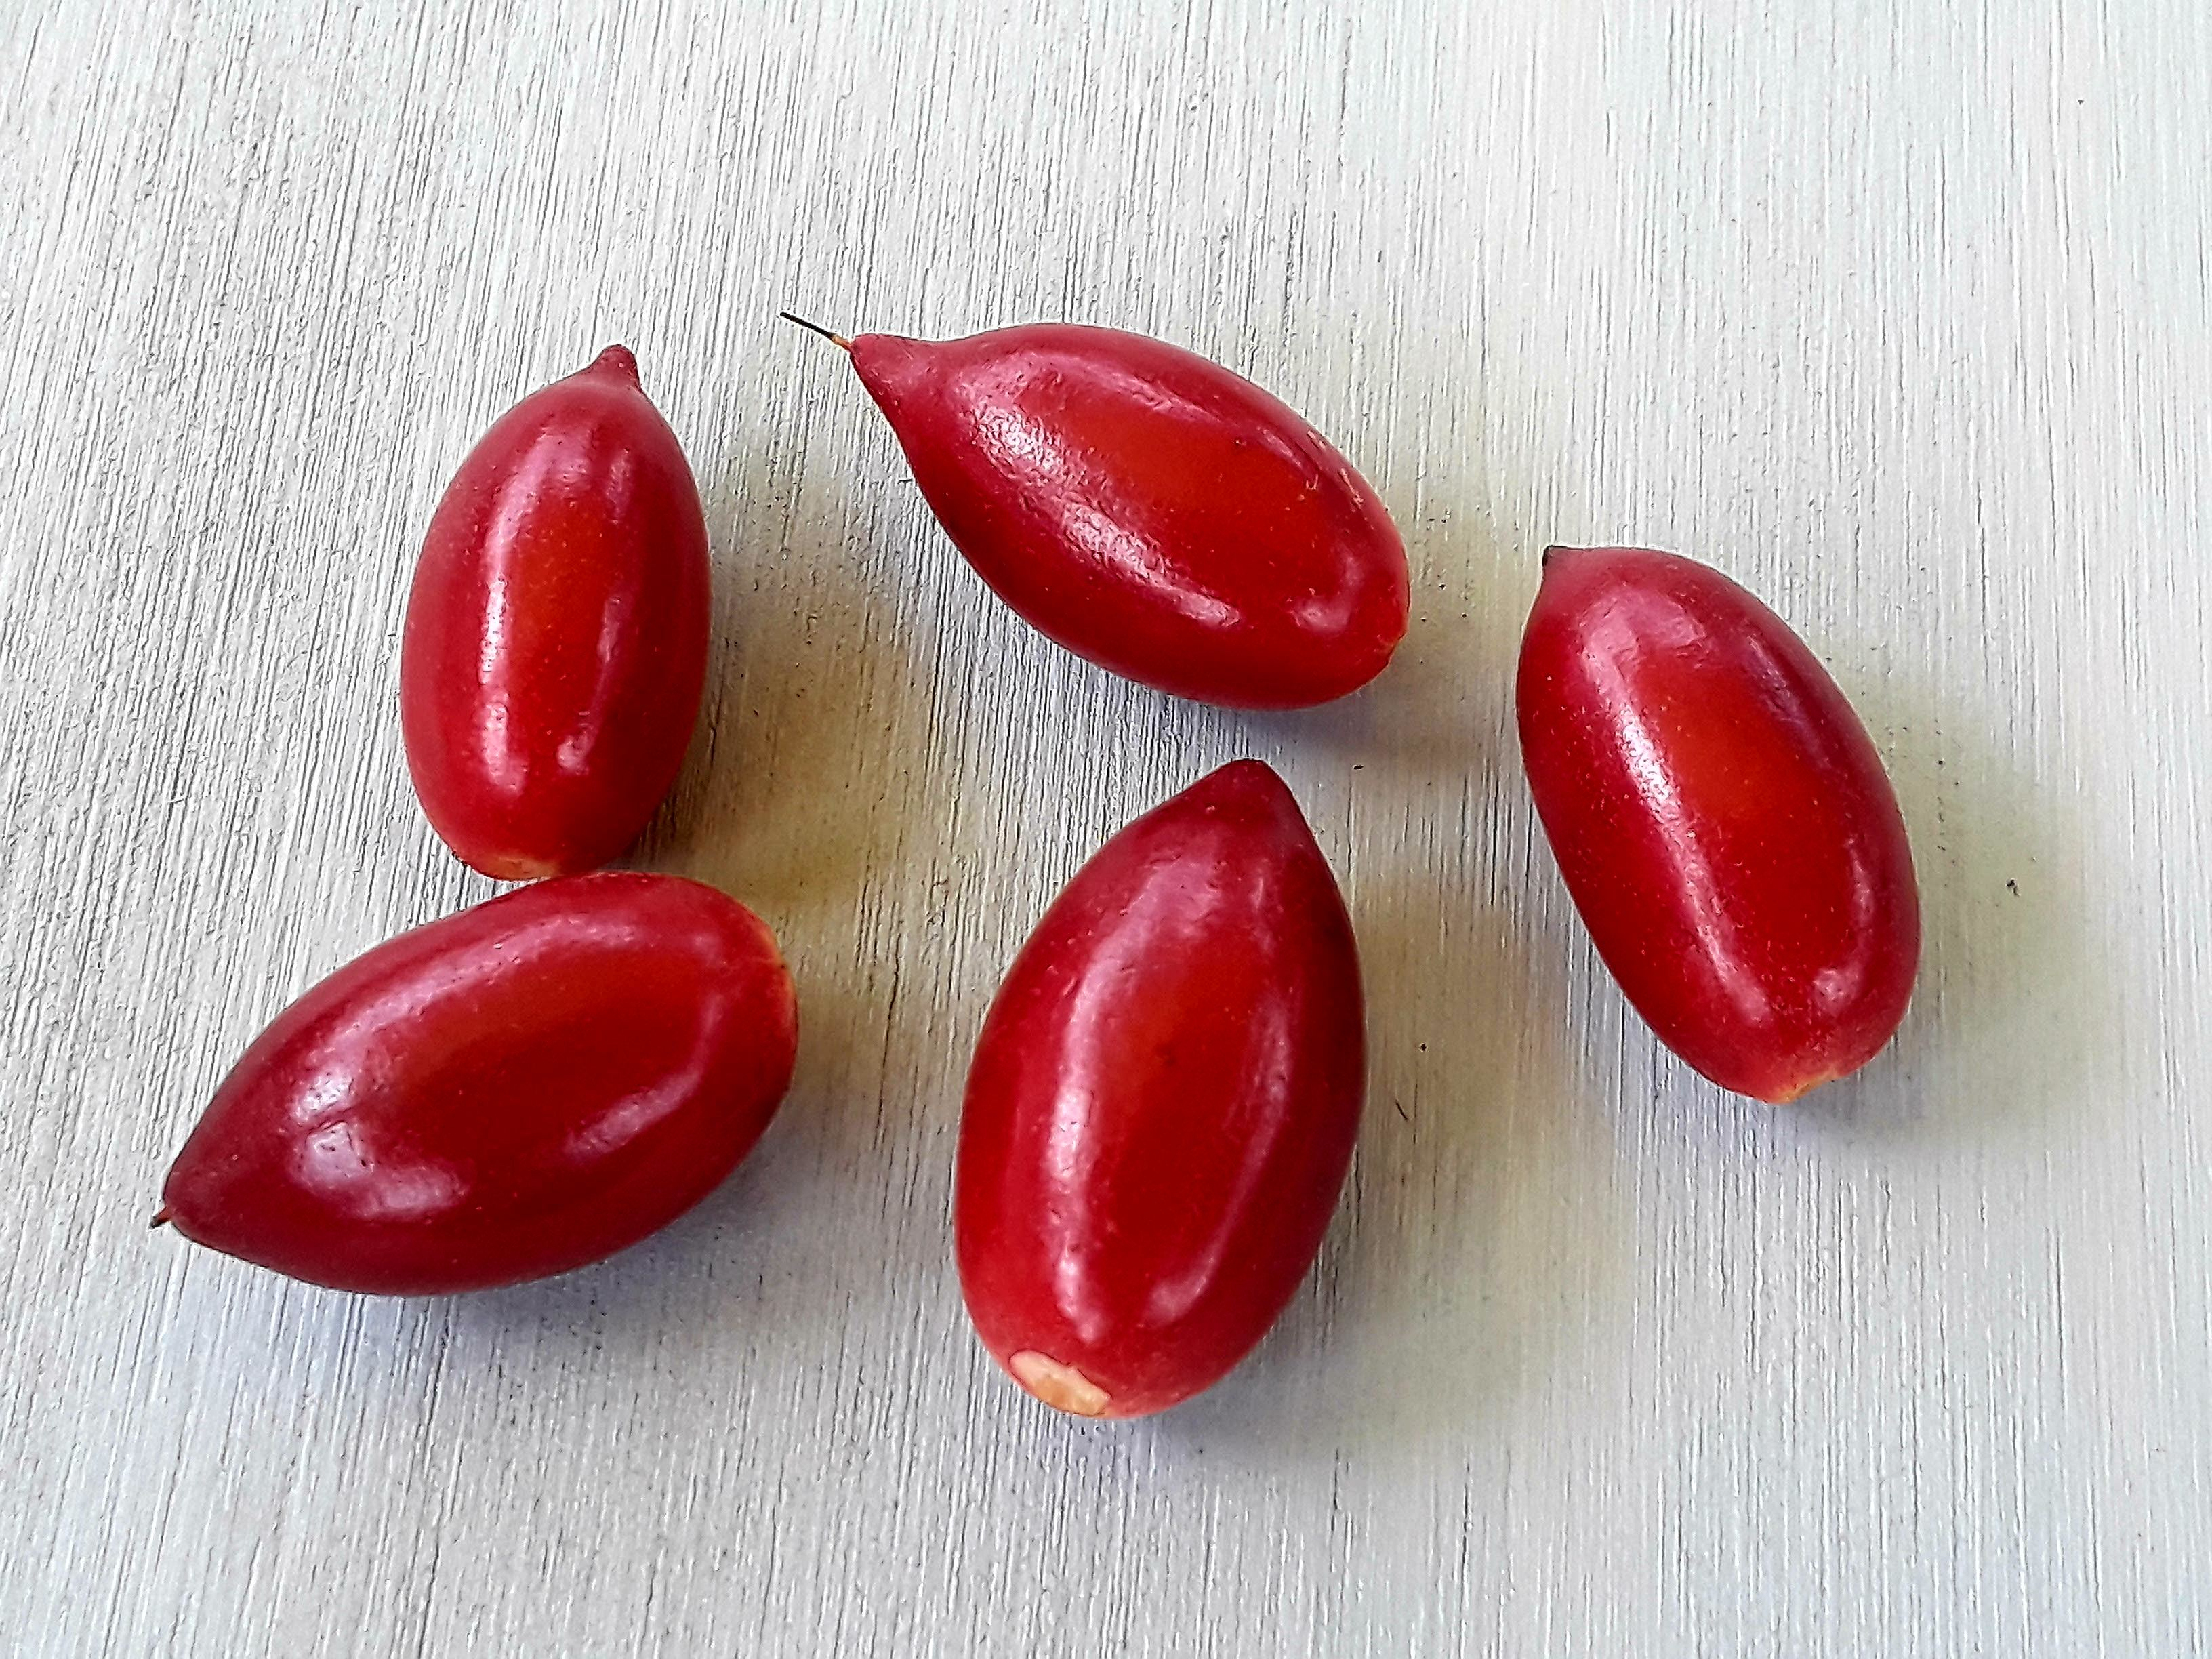 Fresh Miracle berries (Synsepalum dulcificum) Taste altering miracle fruit. 30 berries. 00015